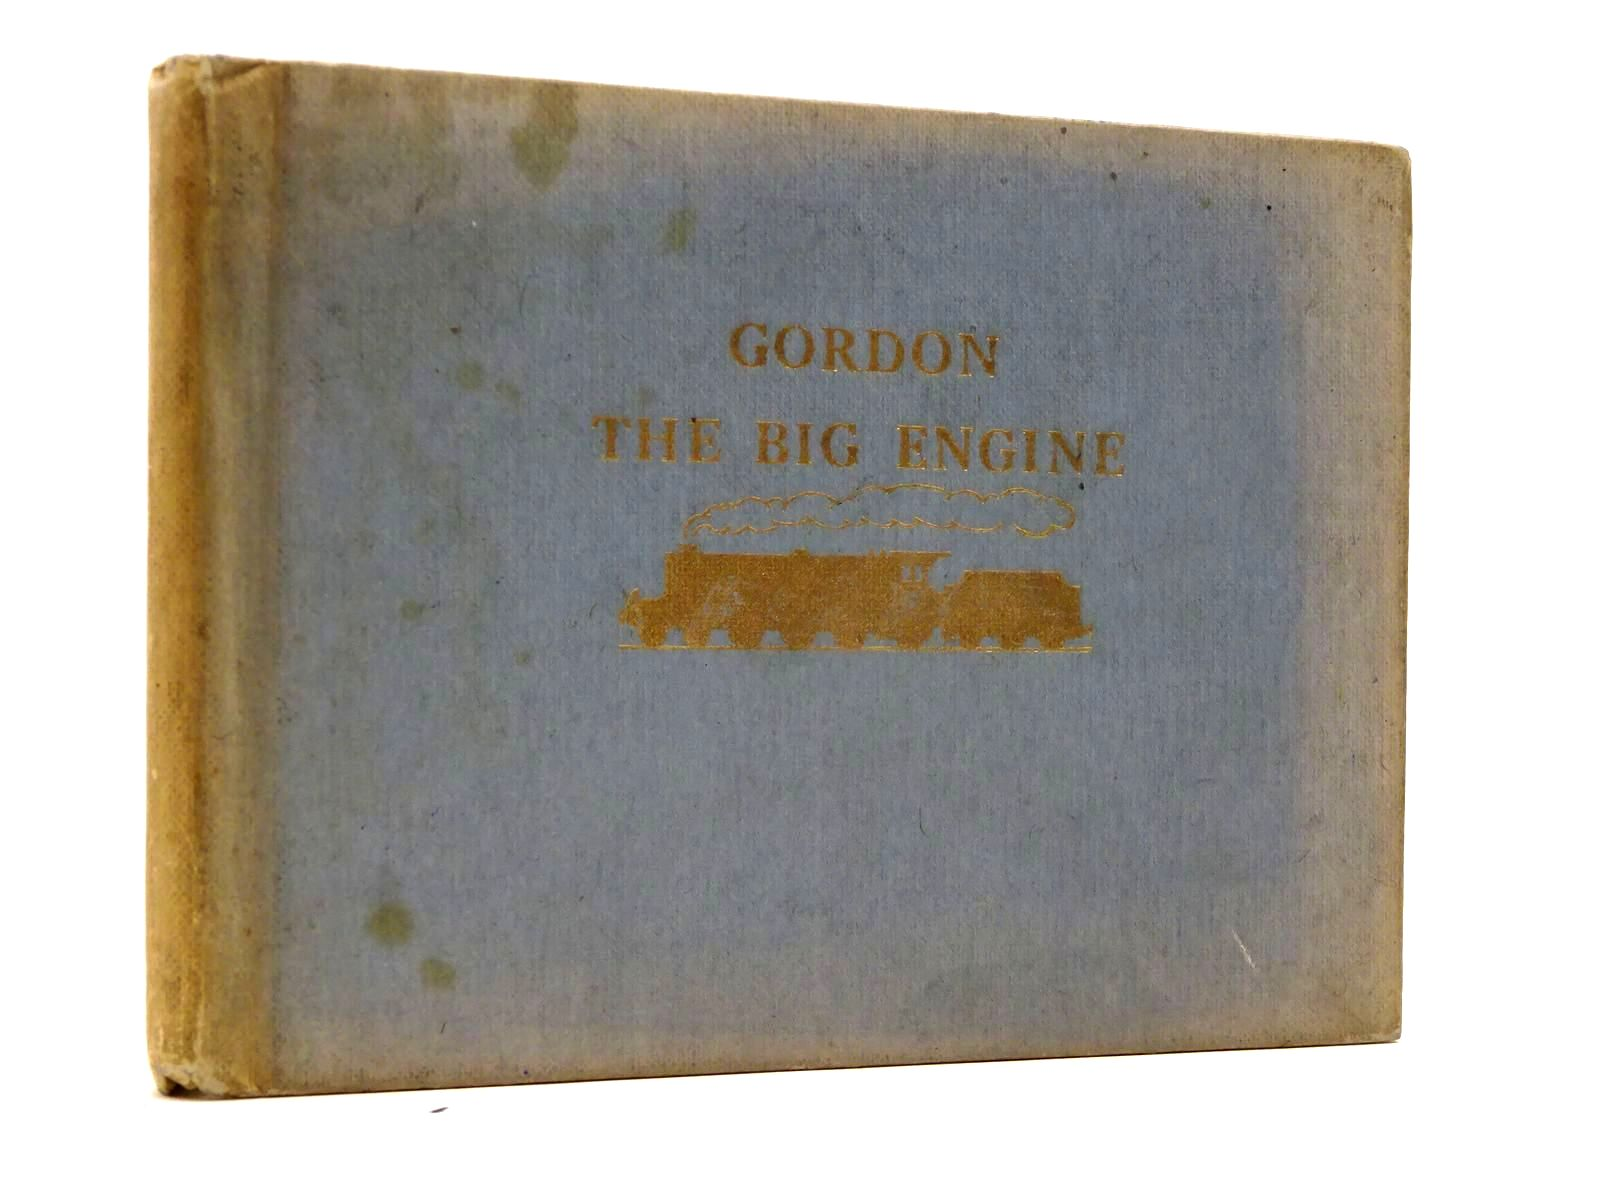 Photo of GORDON THE BIG ENGINE written by Awdry, Rev. W. illustrated by Dalby, C. Reginald published by Edmund Ward Ltd. (STOCK CODE: 2130426)  for sale by Stella & Rose's Books